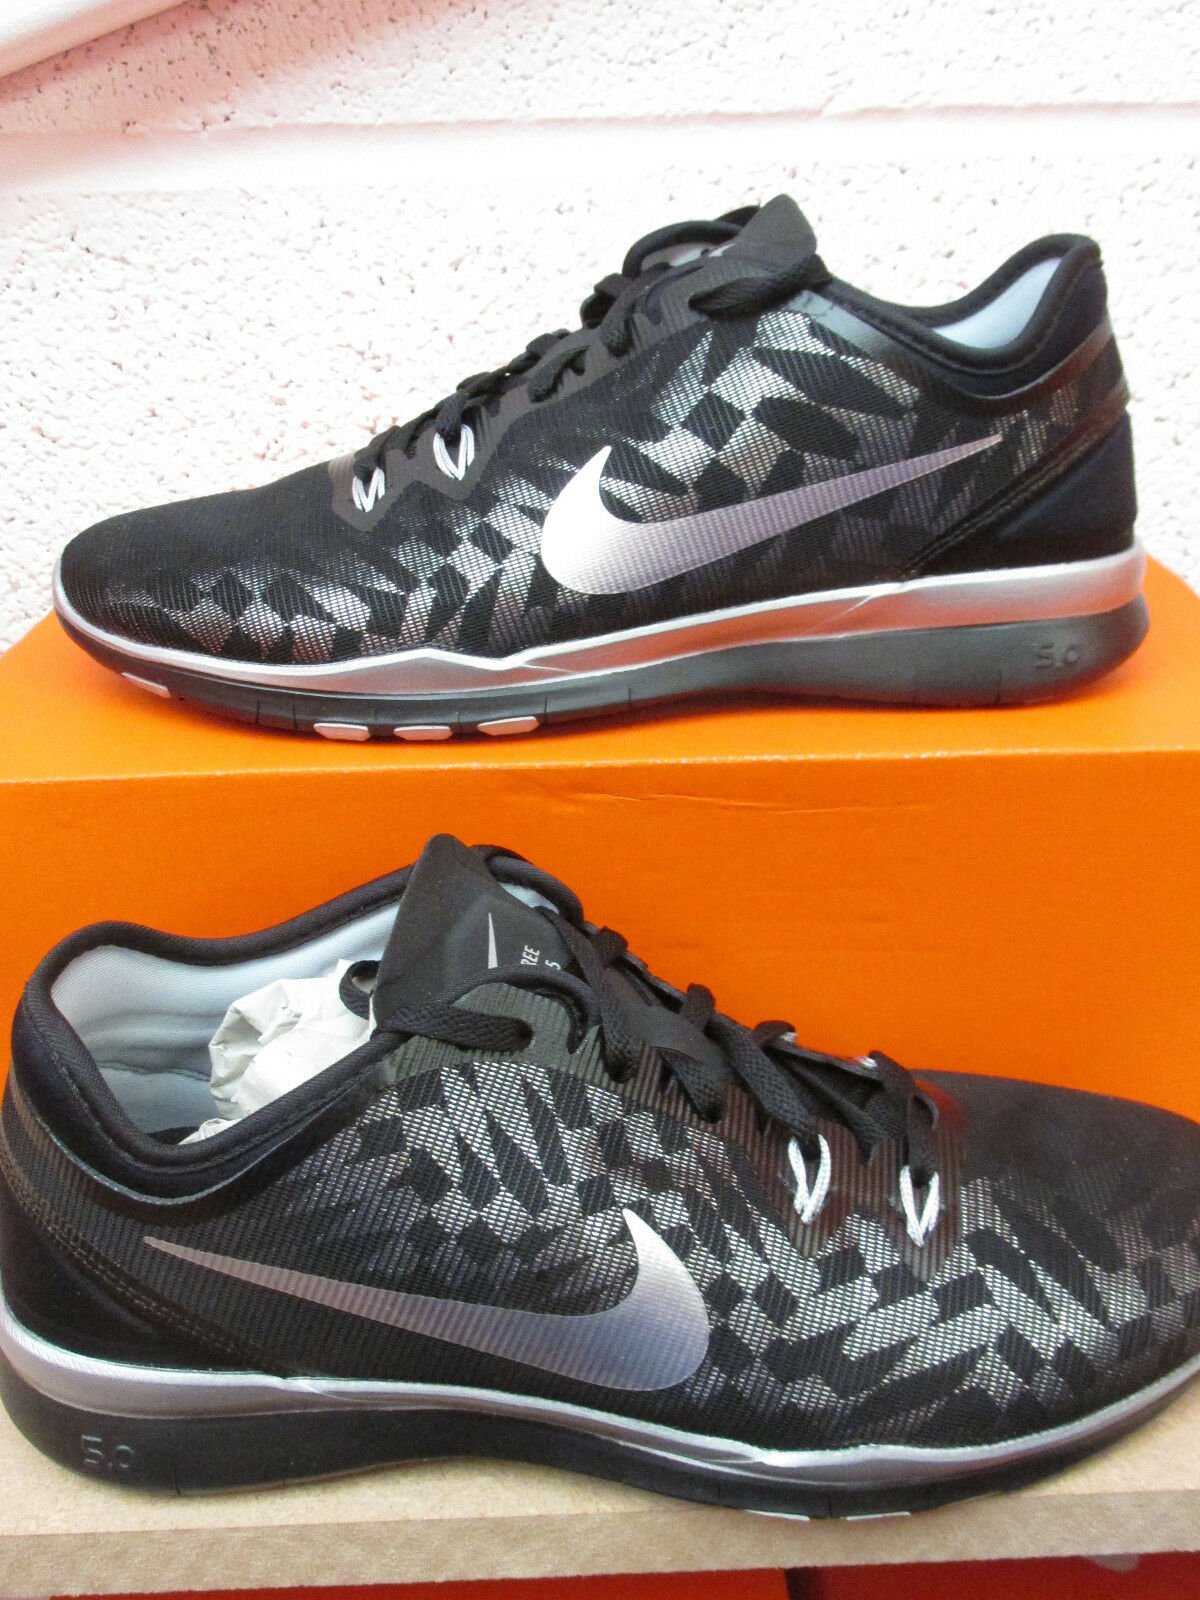 nike Femme free metallic 5.0 TR FIT 5 metallic free trainers 806277 001 Baskets chaussures 6ff537